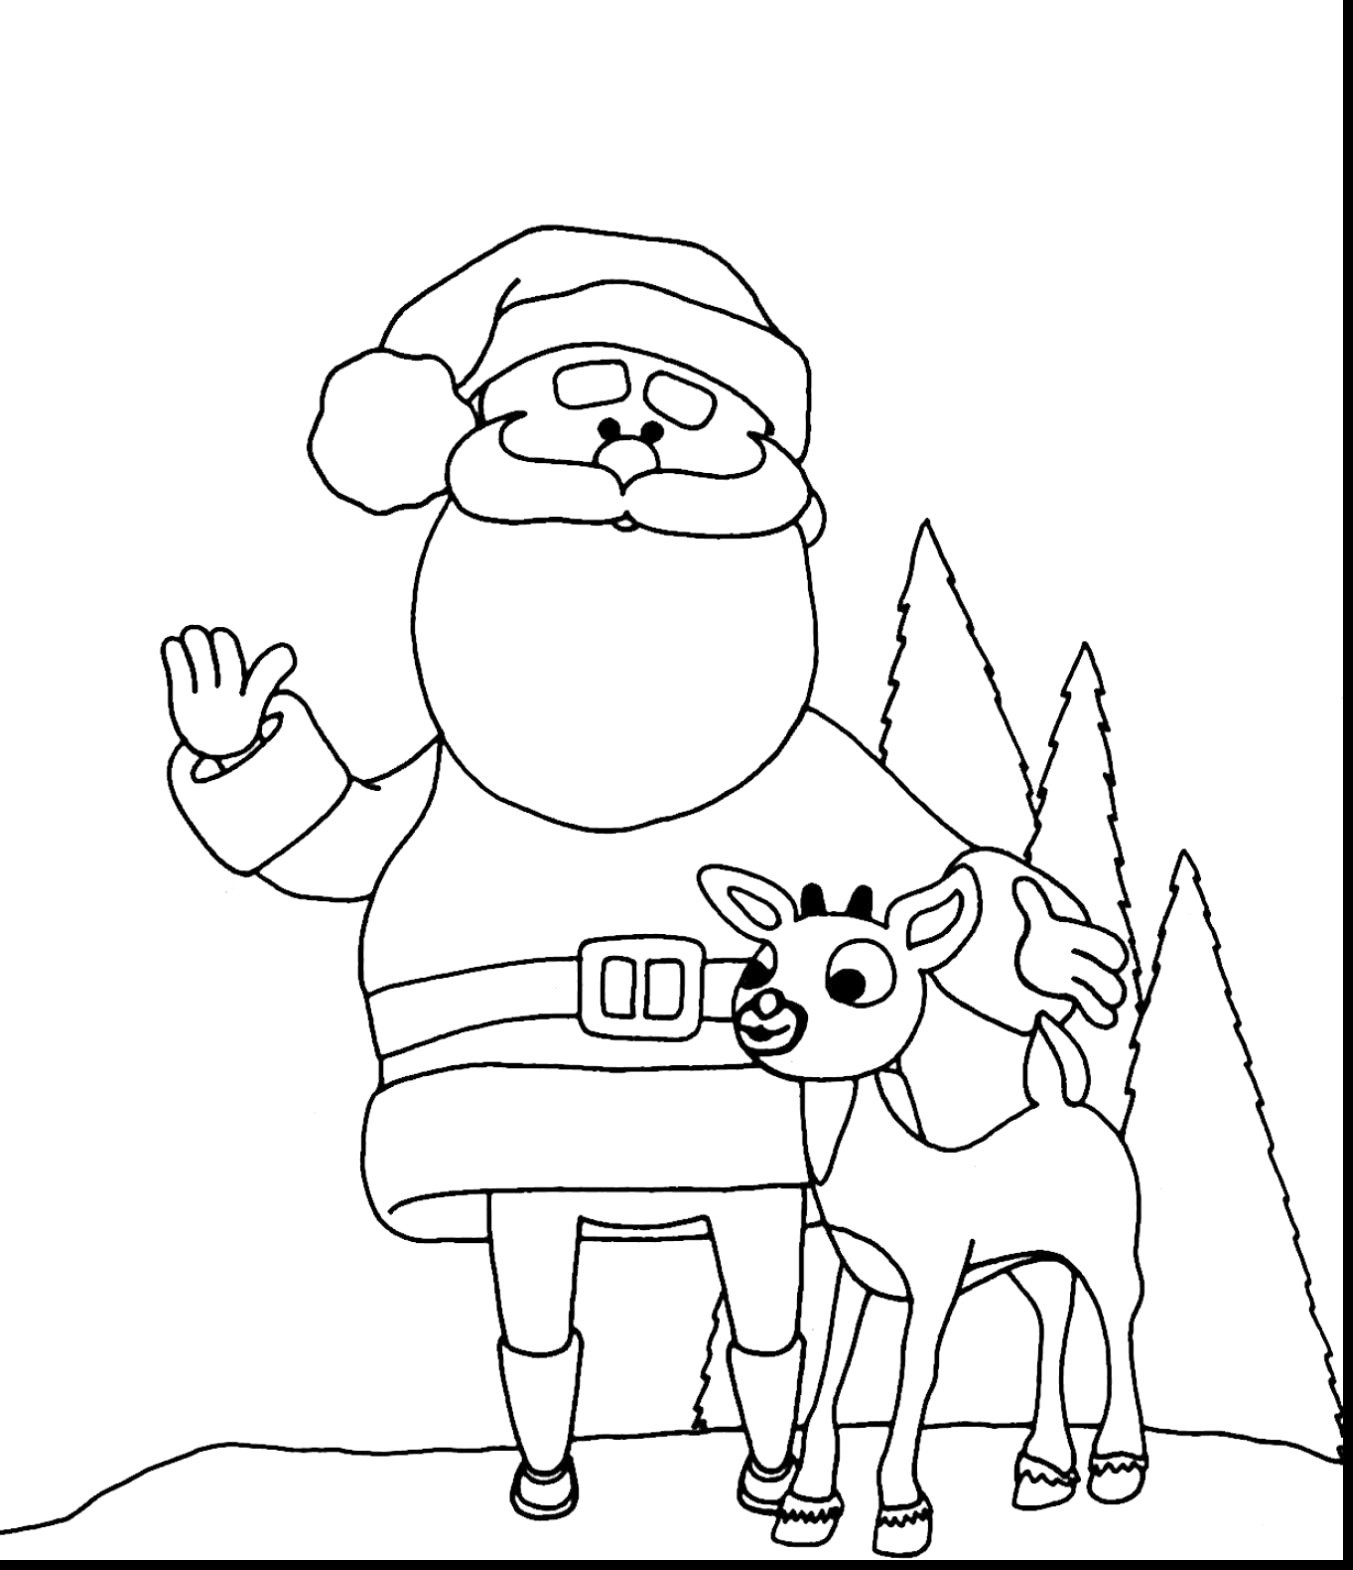 Santa And Rudolph Coloring Pages Coloring Pages Astonishing Rudolph The Red Nosed Reindeer Coloring